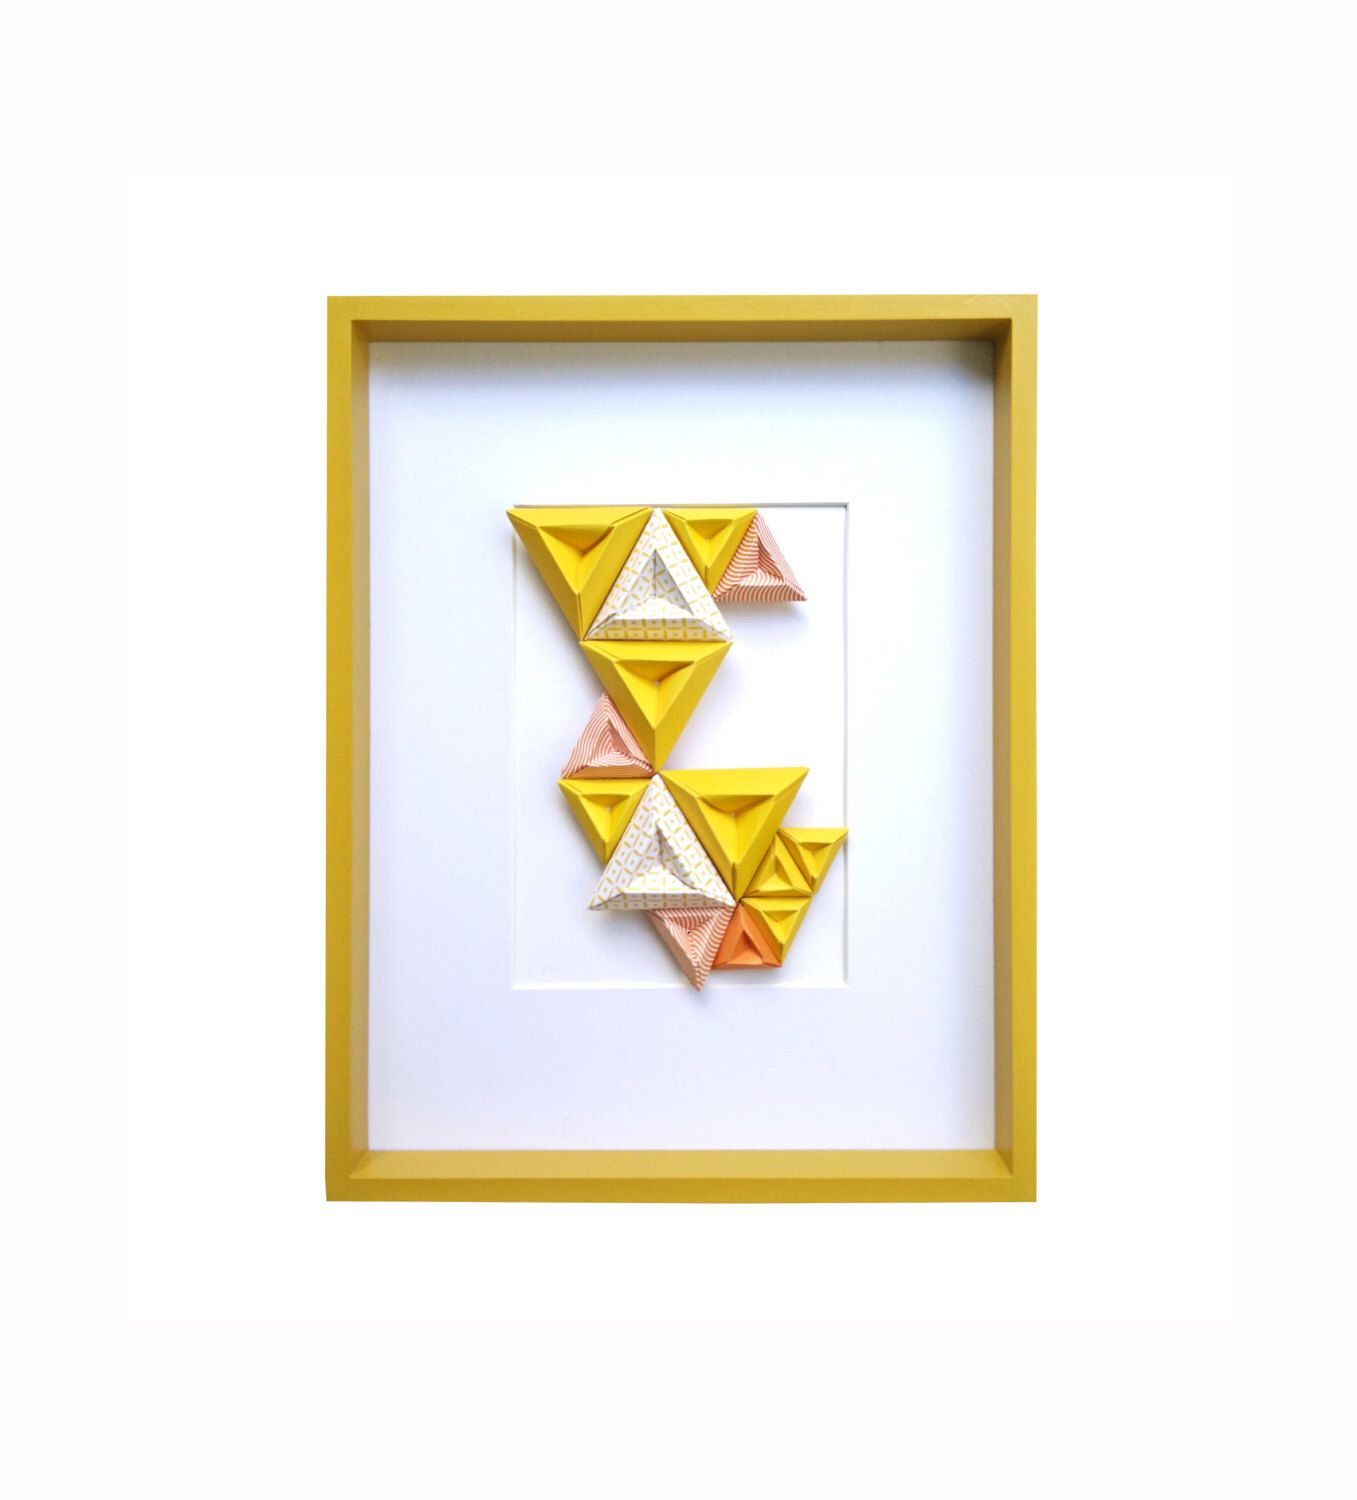 Wooden frame origami paper geometric triangle handcrafted - Birth ...